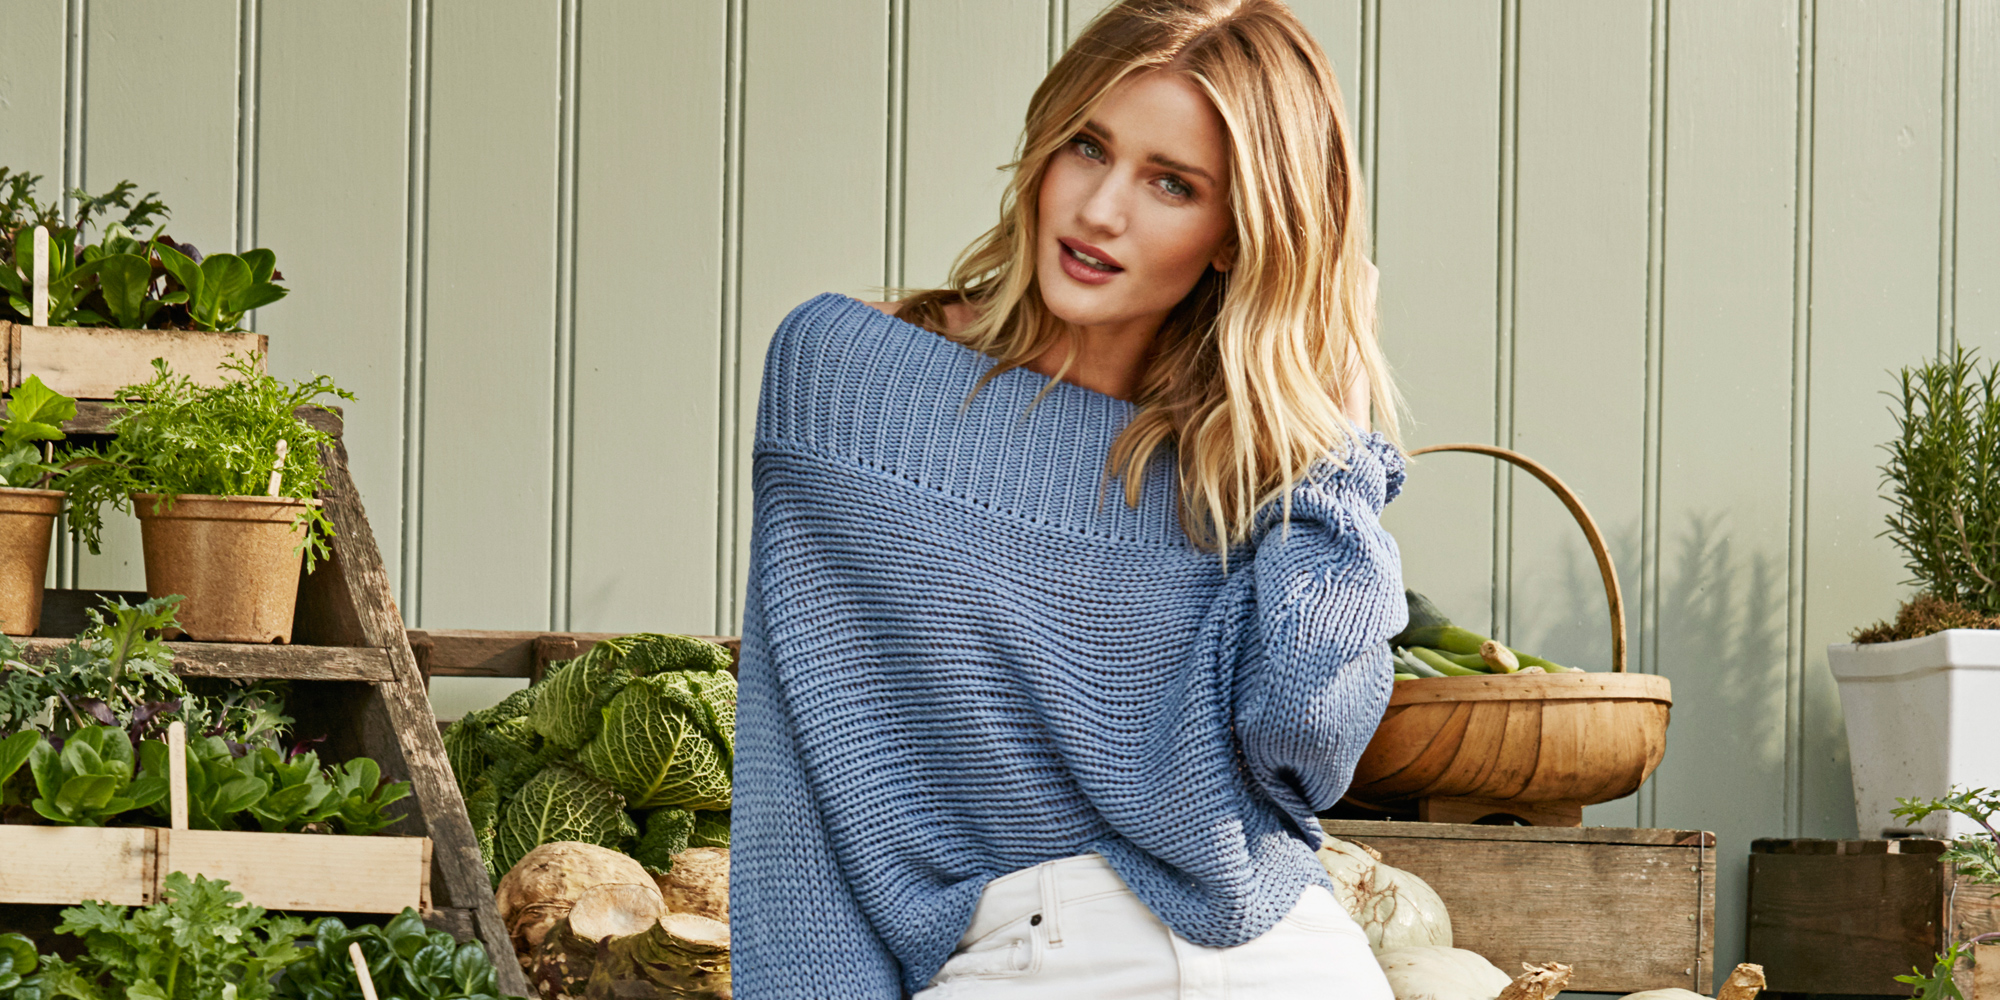 Rosie Huntington-Whiteley finds time for a selfie